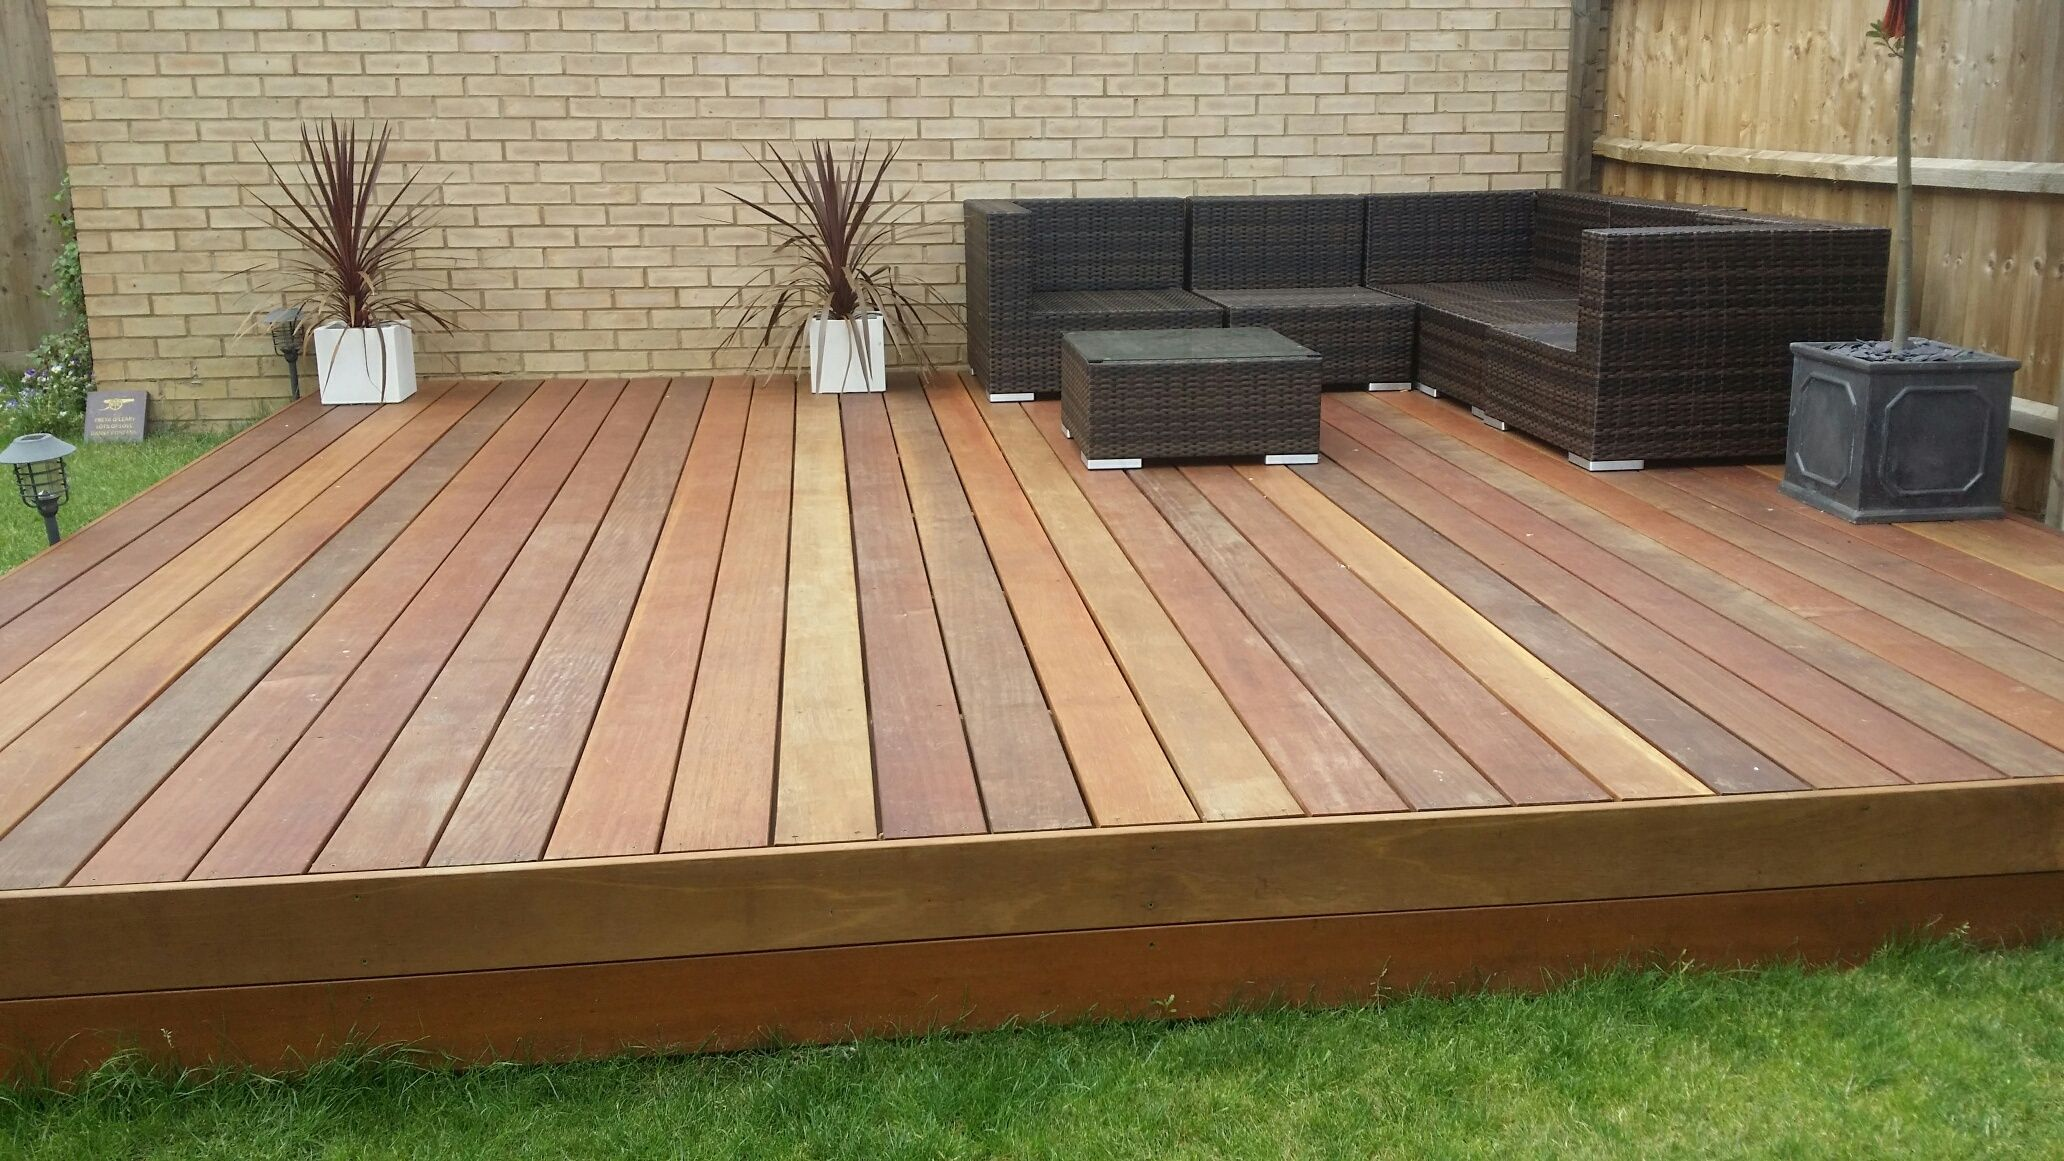 Raised decking ideas uk google search patio for Hardwood outdoor decking